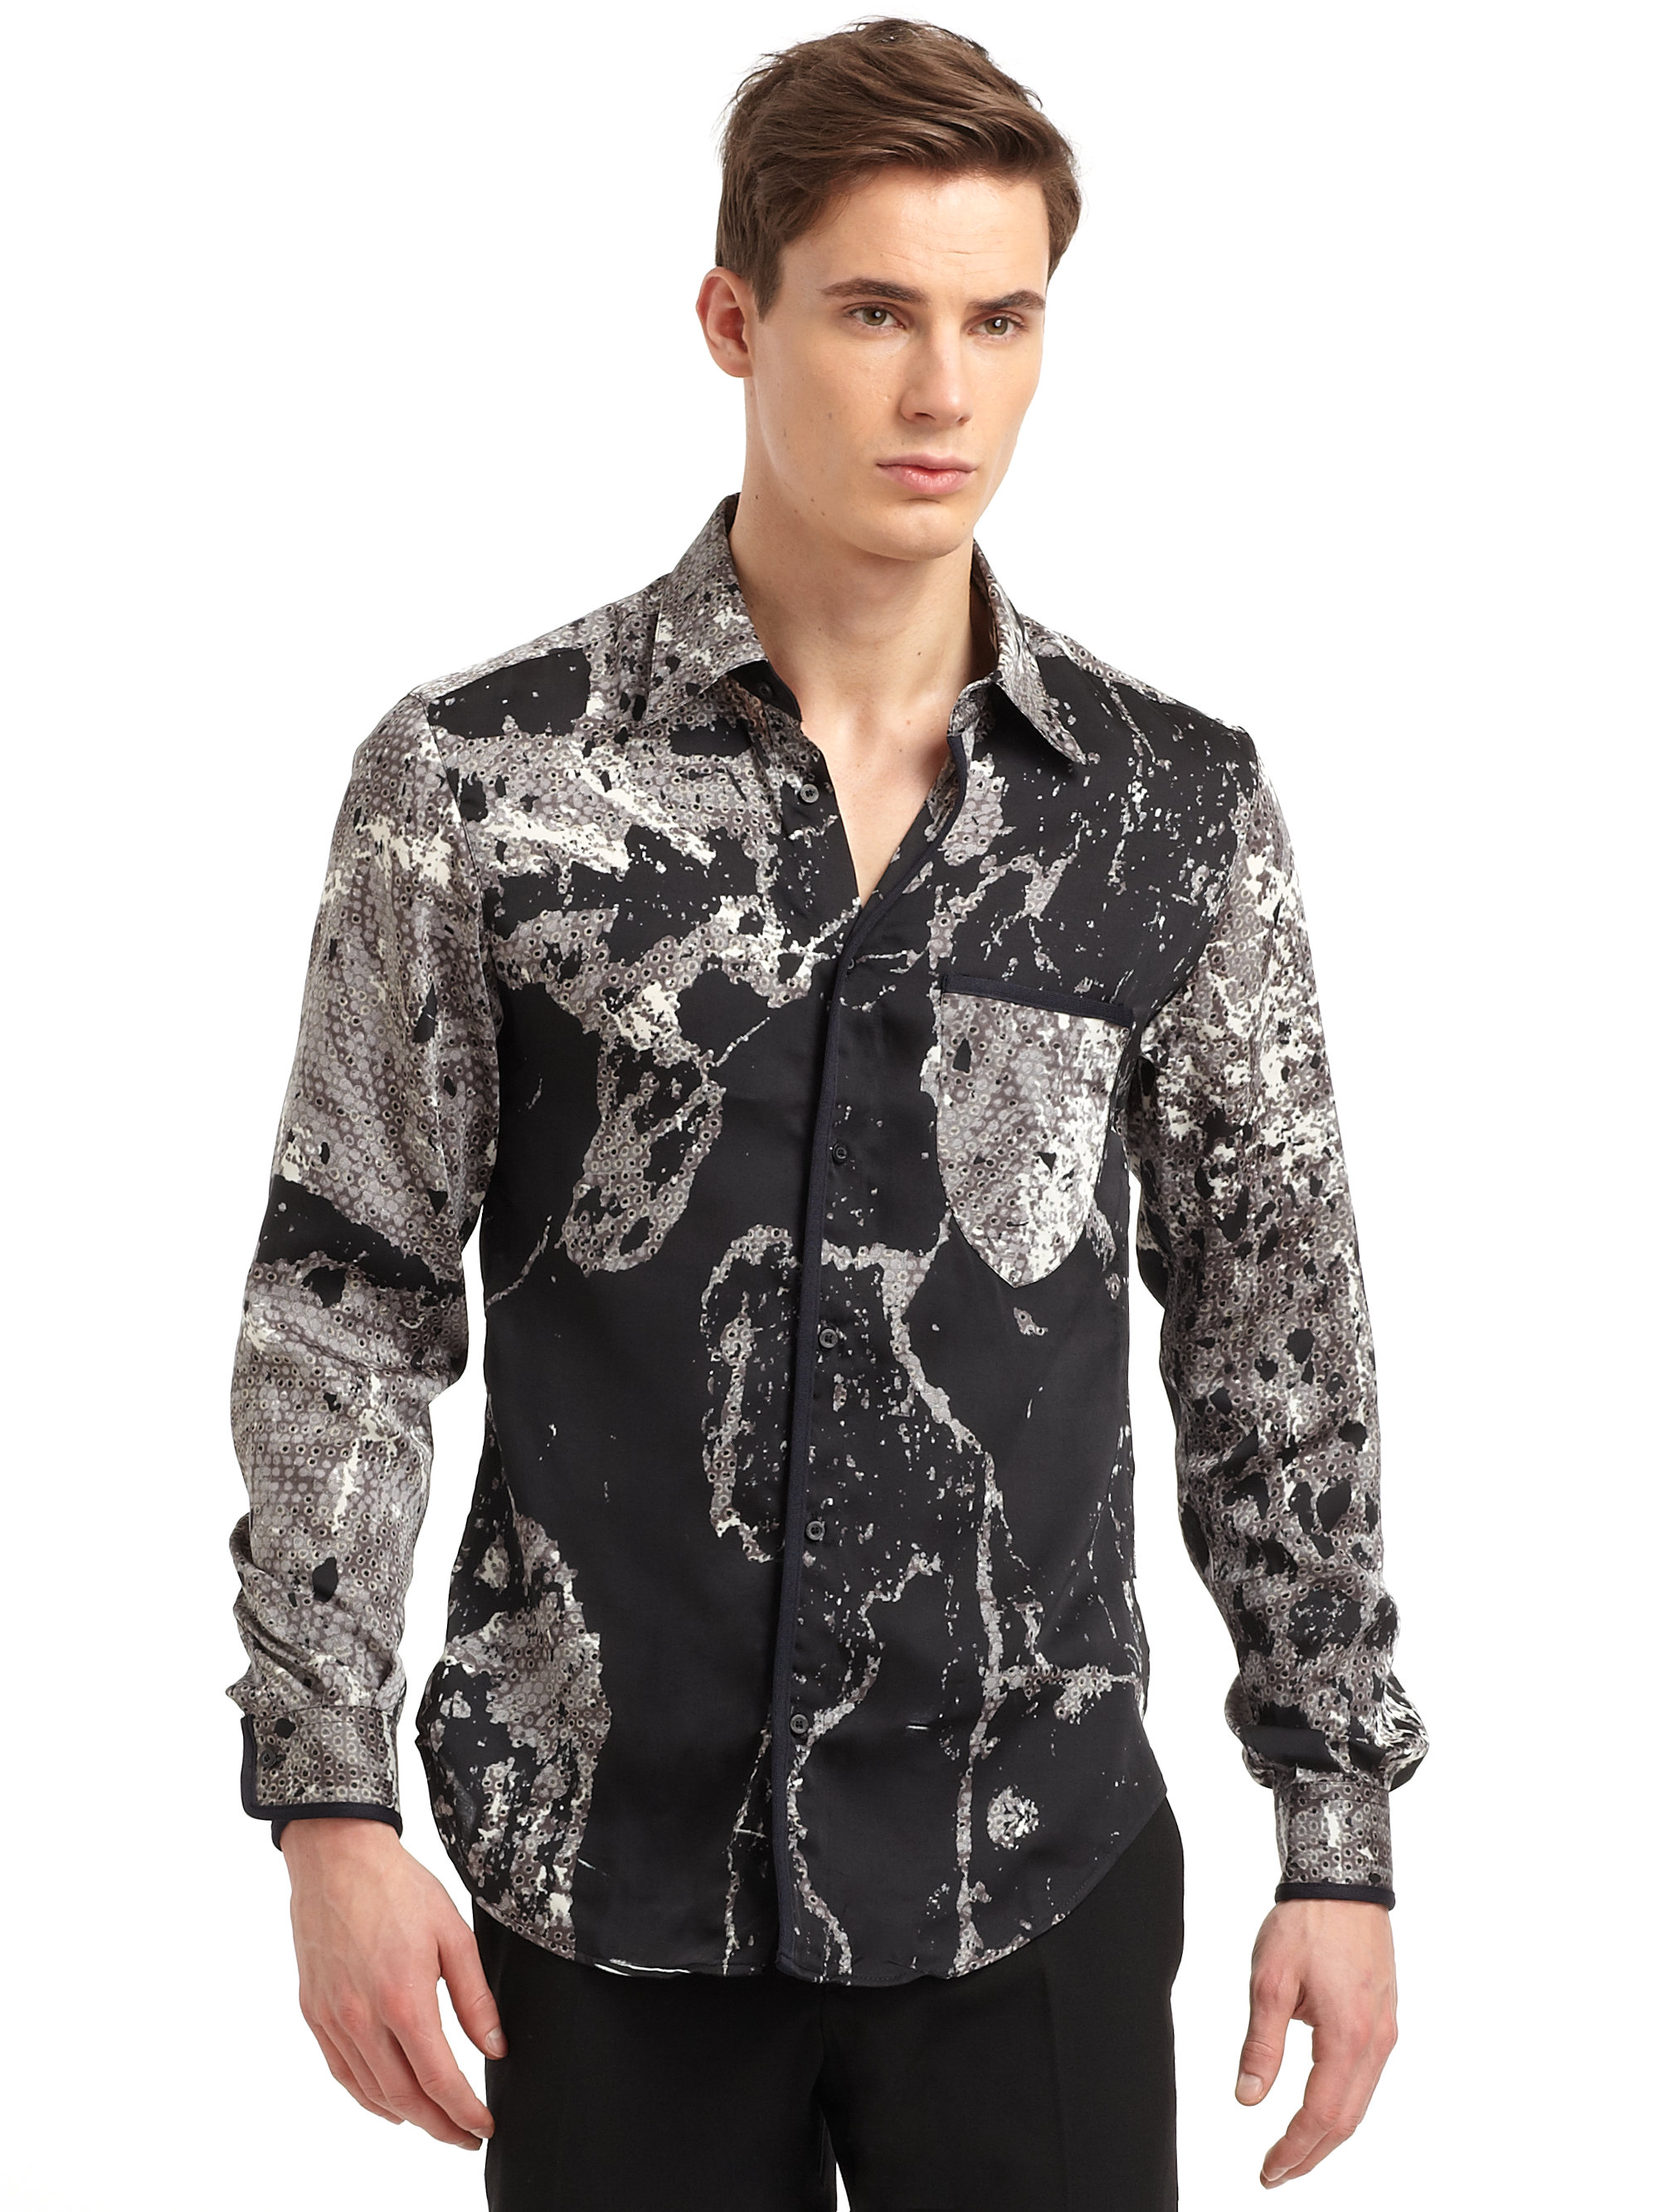 Roberto Cavalli Snake Print Sport Shirt In Black For Men Lyst